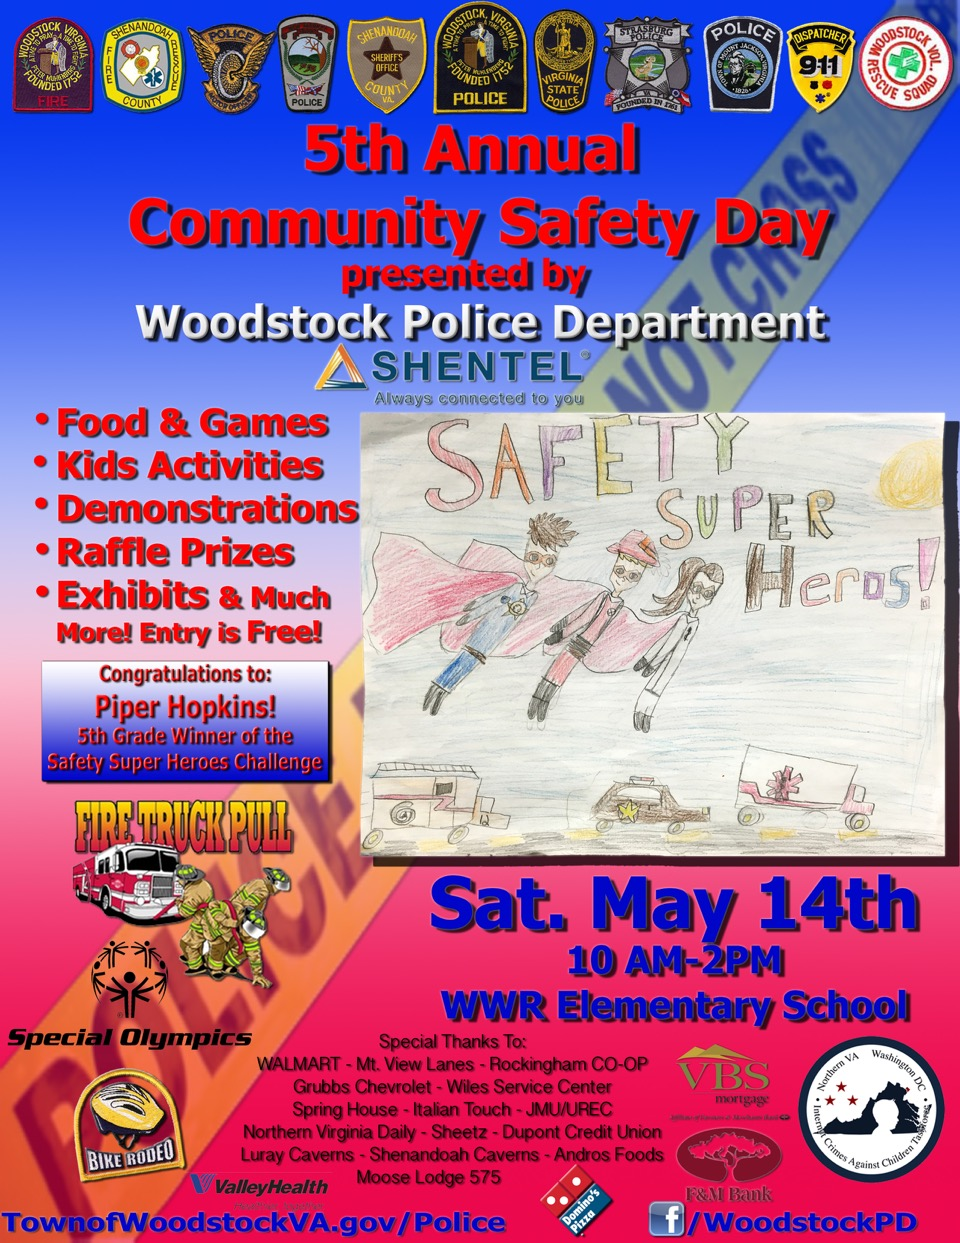 Safety Day 2016 flyer.jpeg